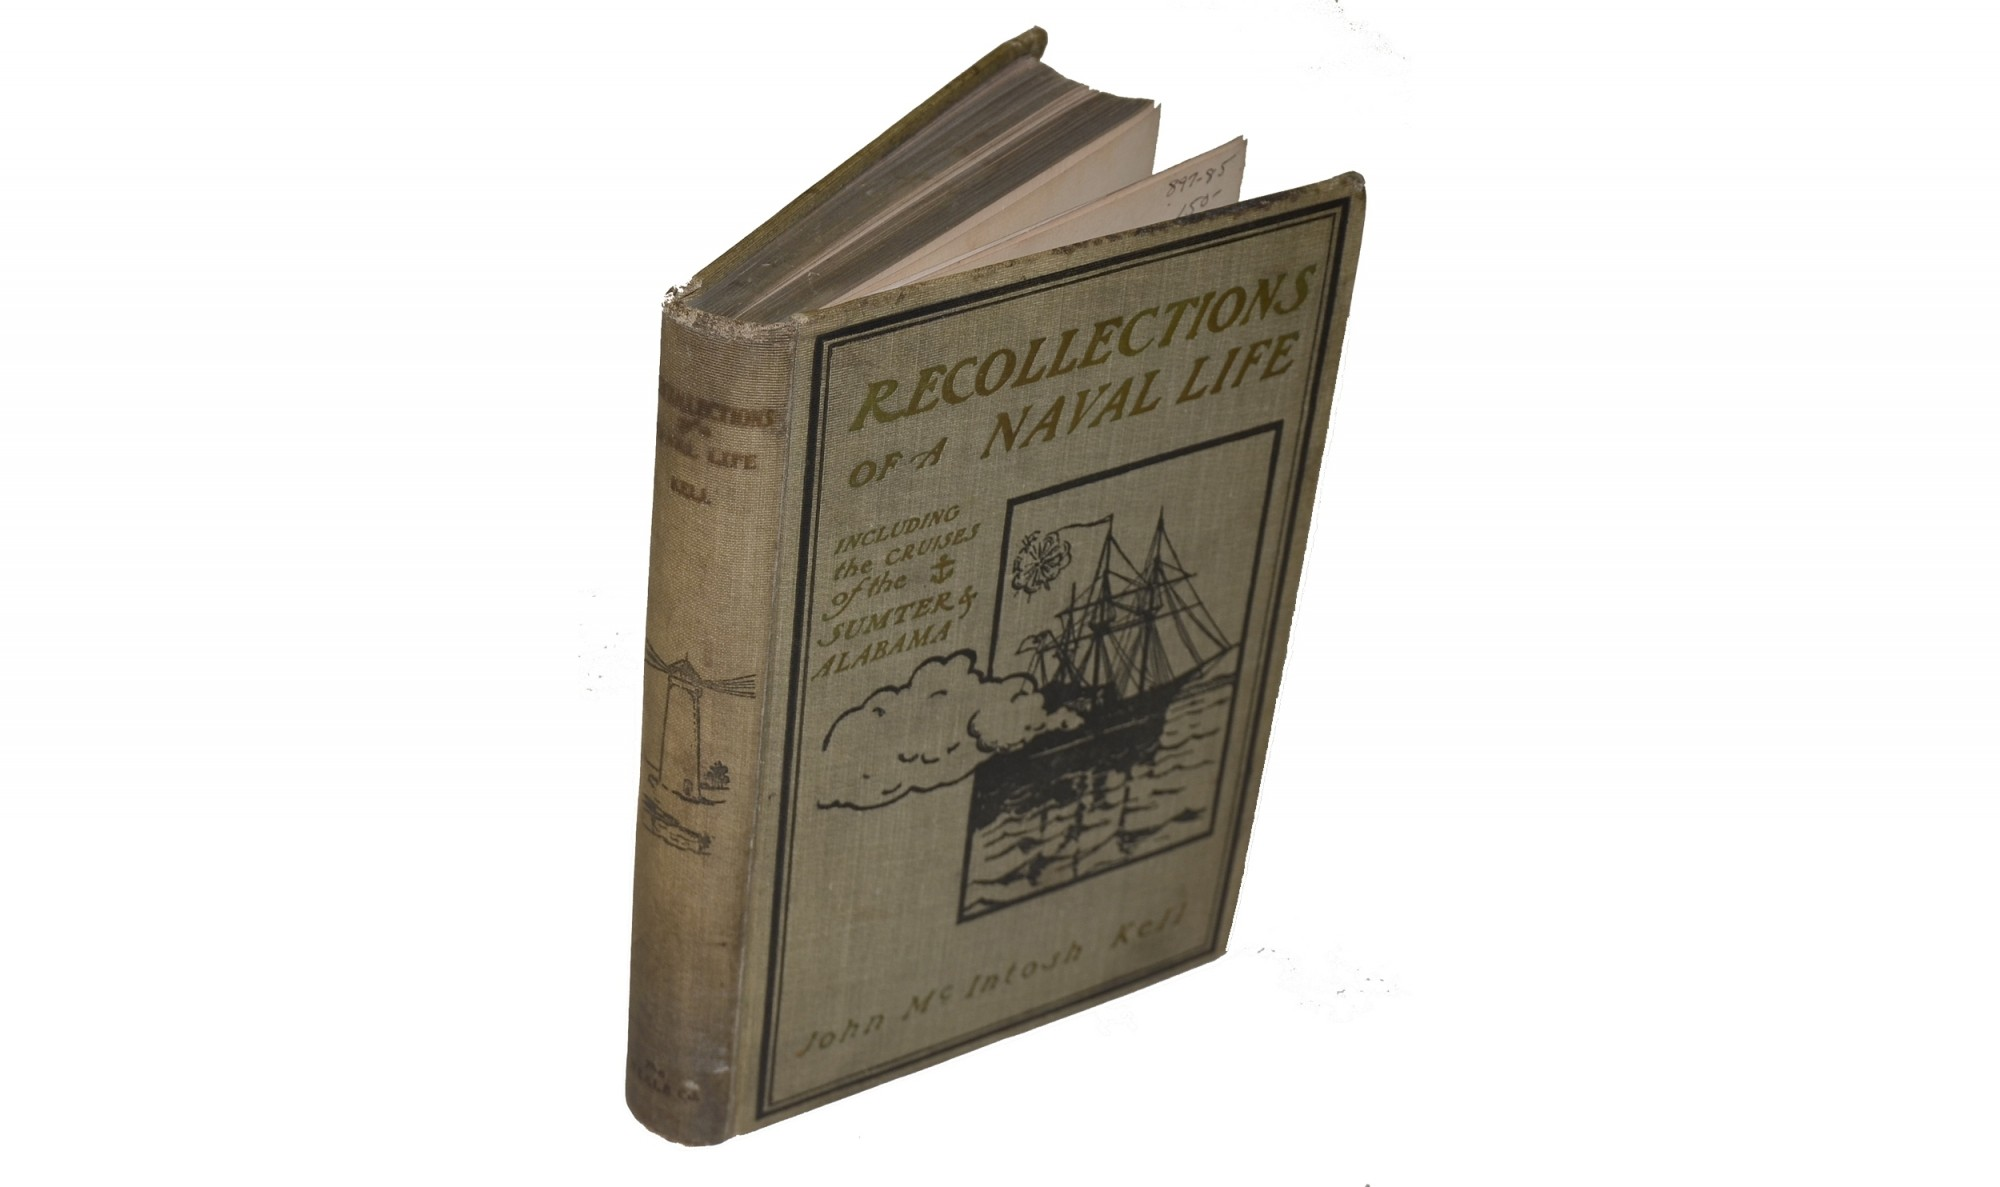 RECOLLECTIONS OF A NAVAL LIFE, INCLUDING THE CRUISES OF THE SUMTER AND ALABAMA